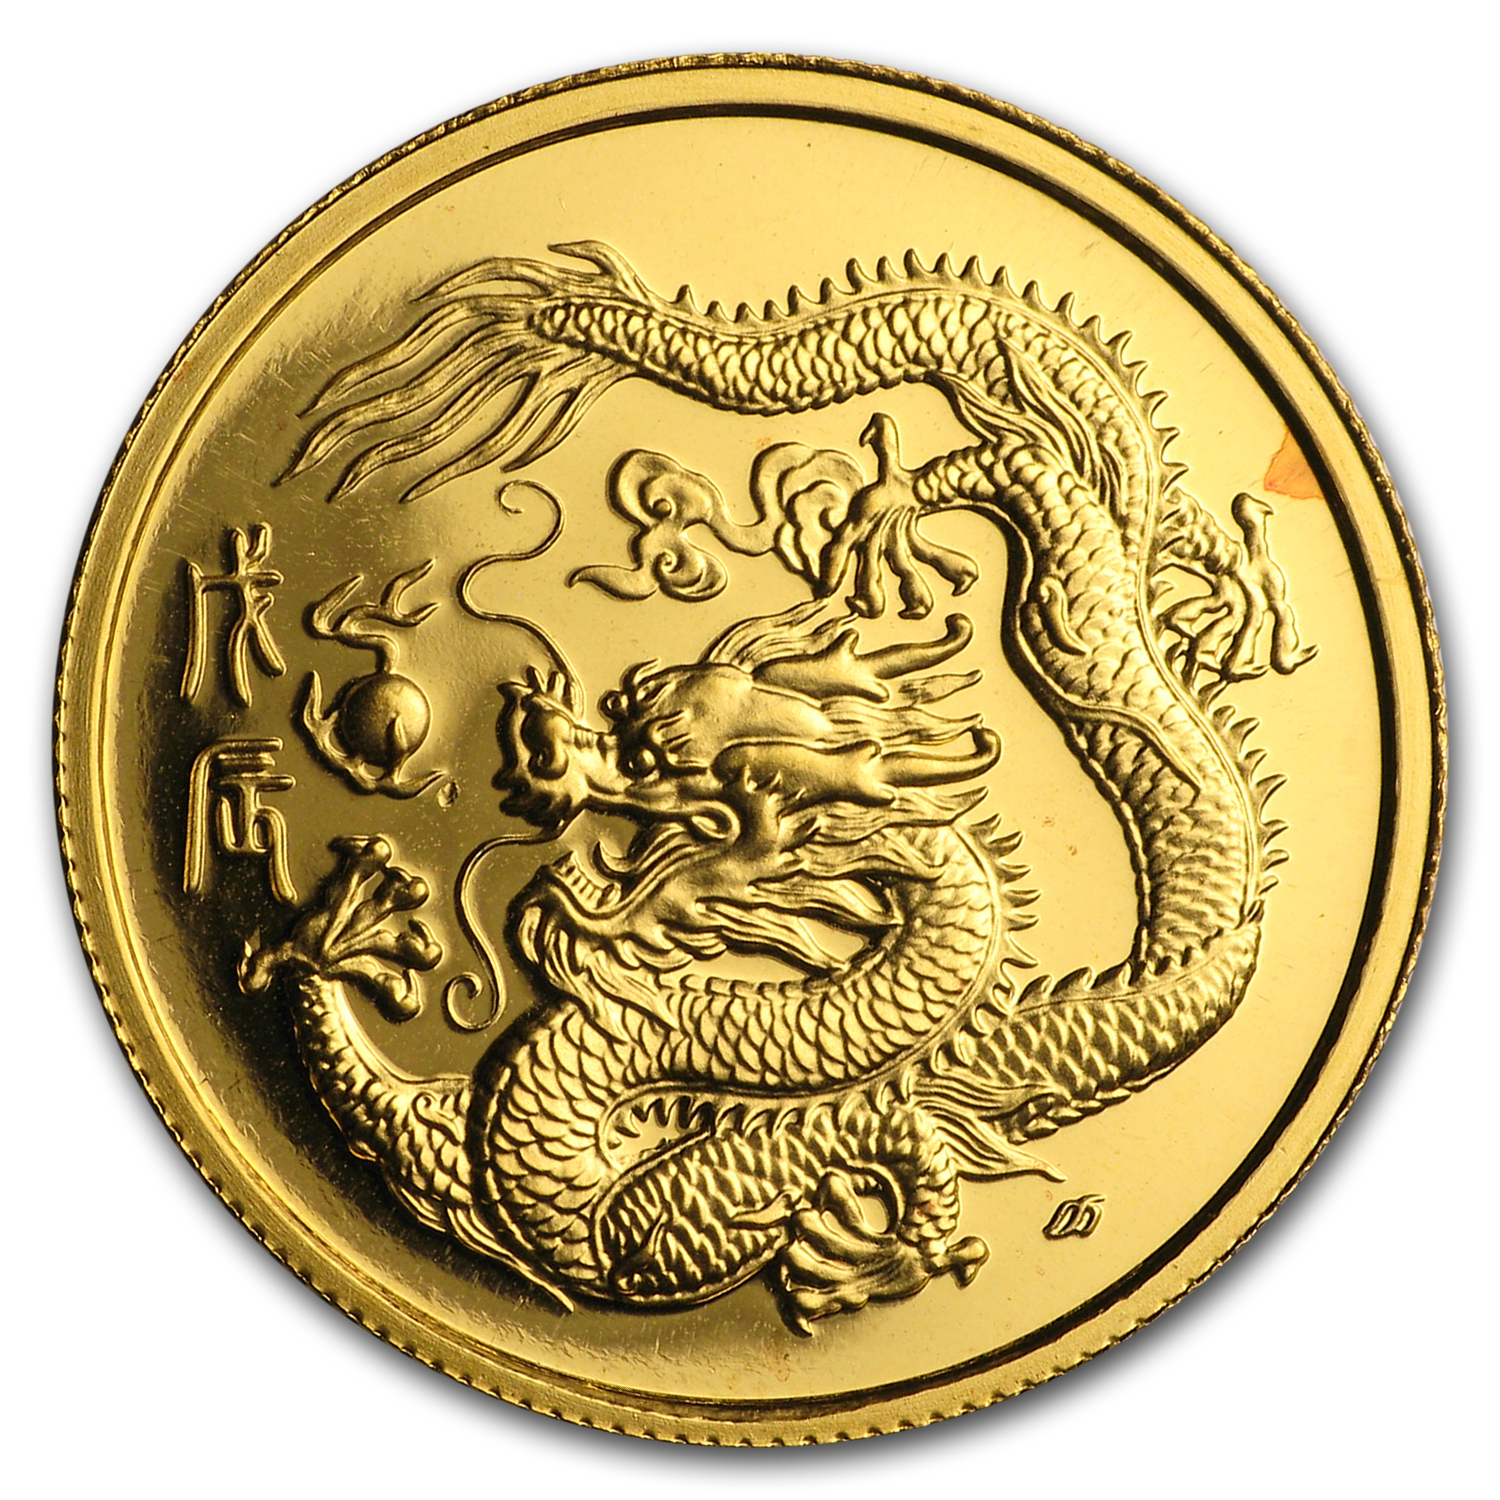 1988 Singapore 1/10 oz Proof Gold 10 Singold Year of the Dragon